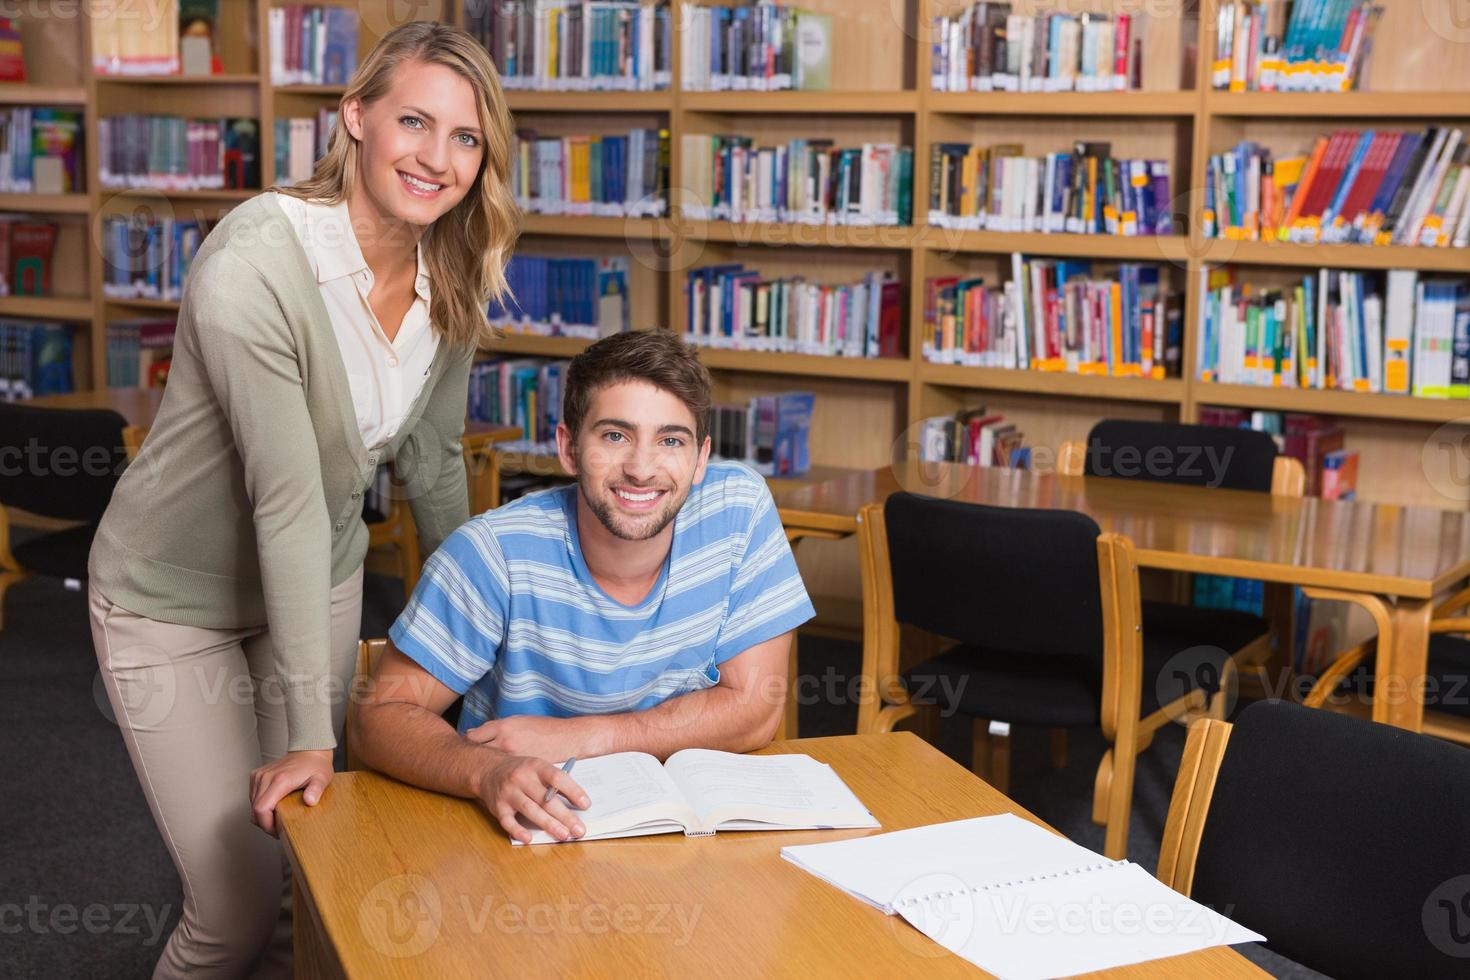 Student getting help from tutor in library photo